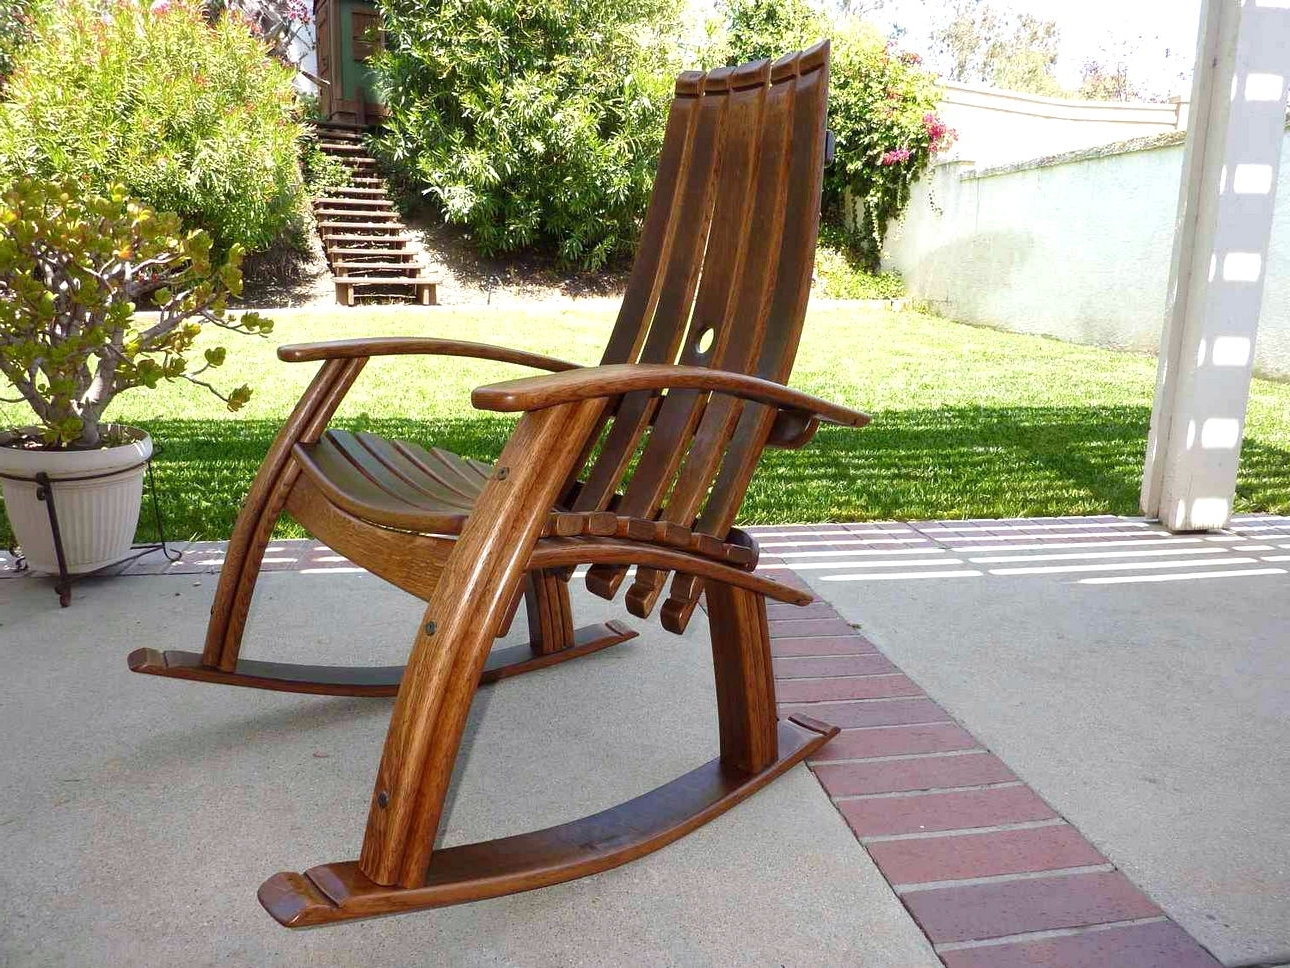 2018 Rocking Chair Outdoor Wooden Pertaining To Outdoor Wooden Rocking Chairs Design – Home Interior And Furniture (View 15 of 15)